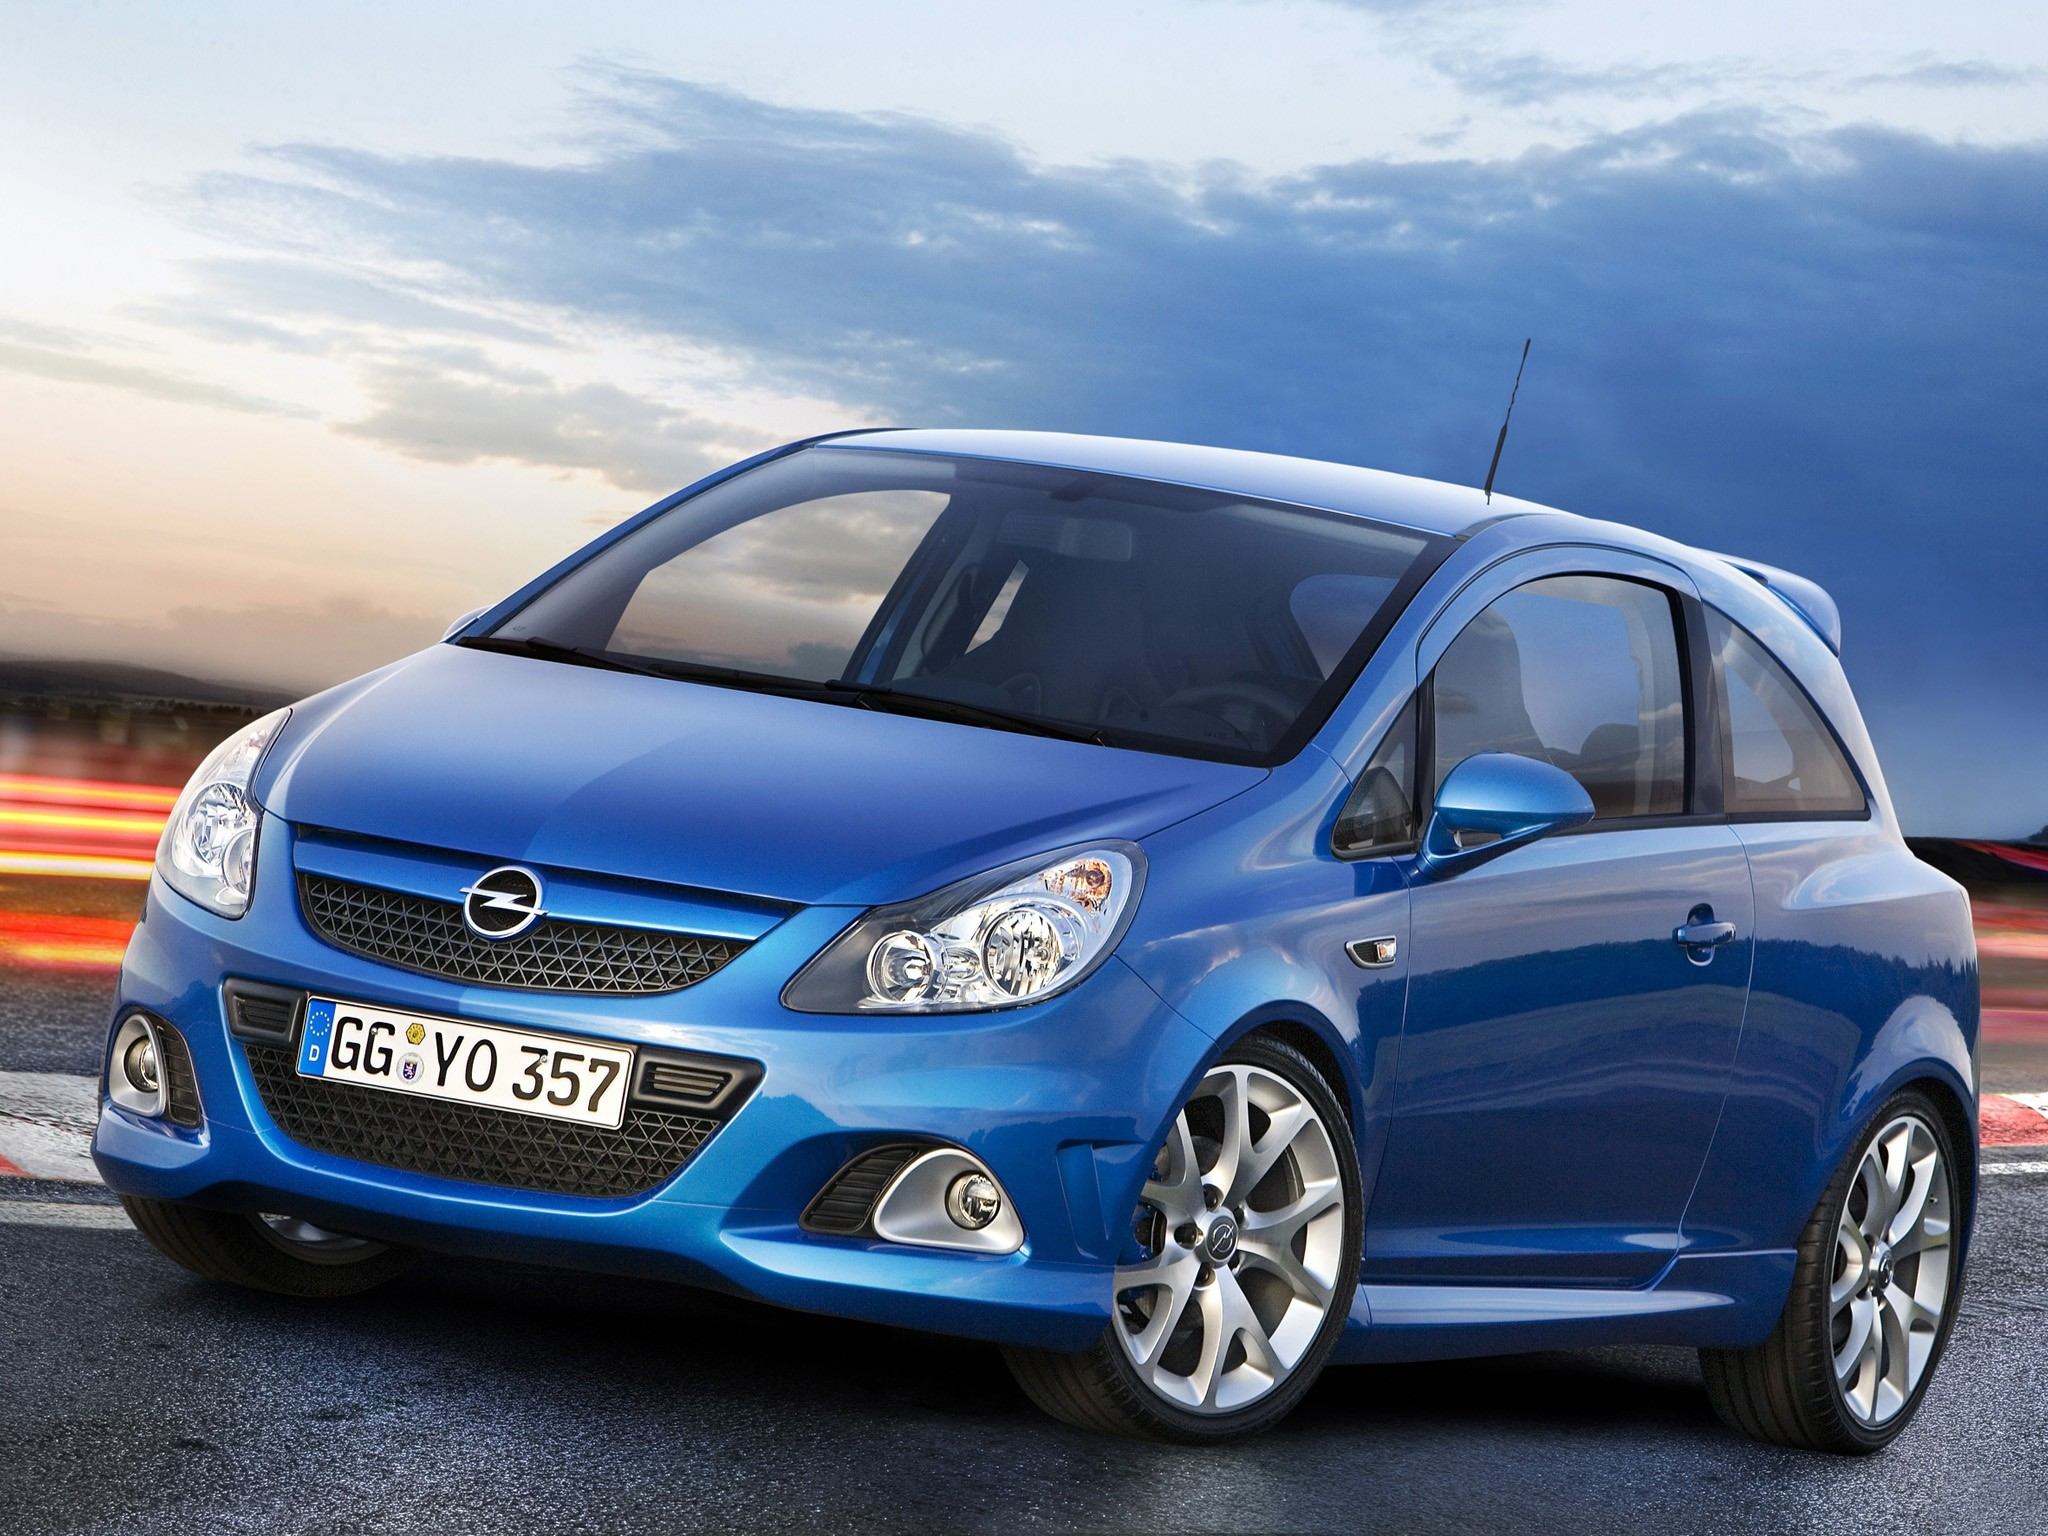 OPEL Corsa OPC specs \u0026 photos  2007, 2008, 2009, 2010, 2011, 2012, 2013, 2014, 2015  autoevolution